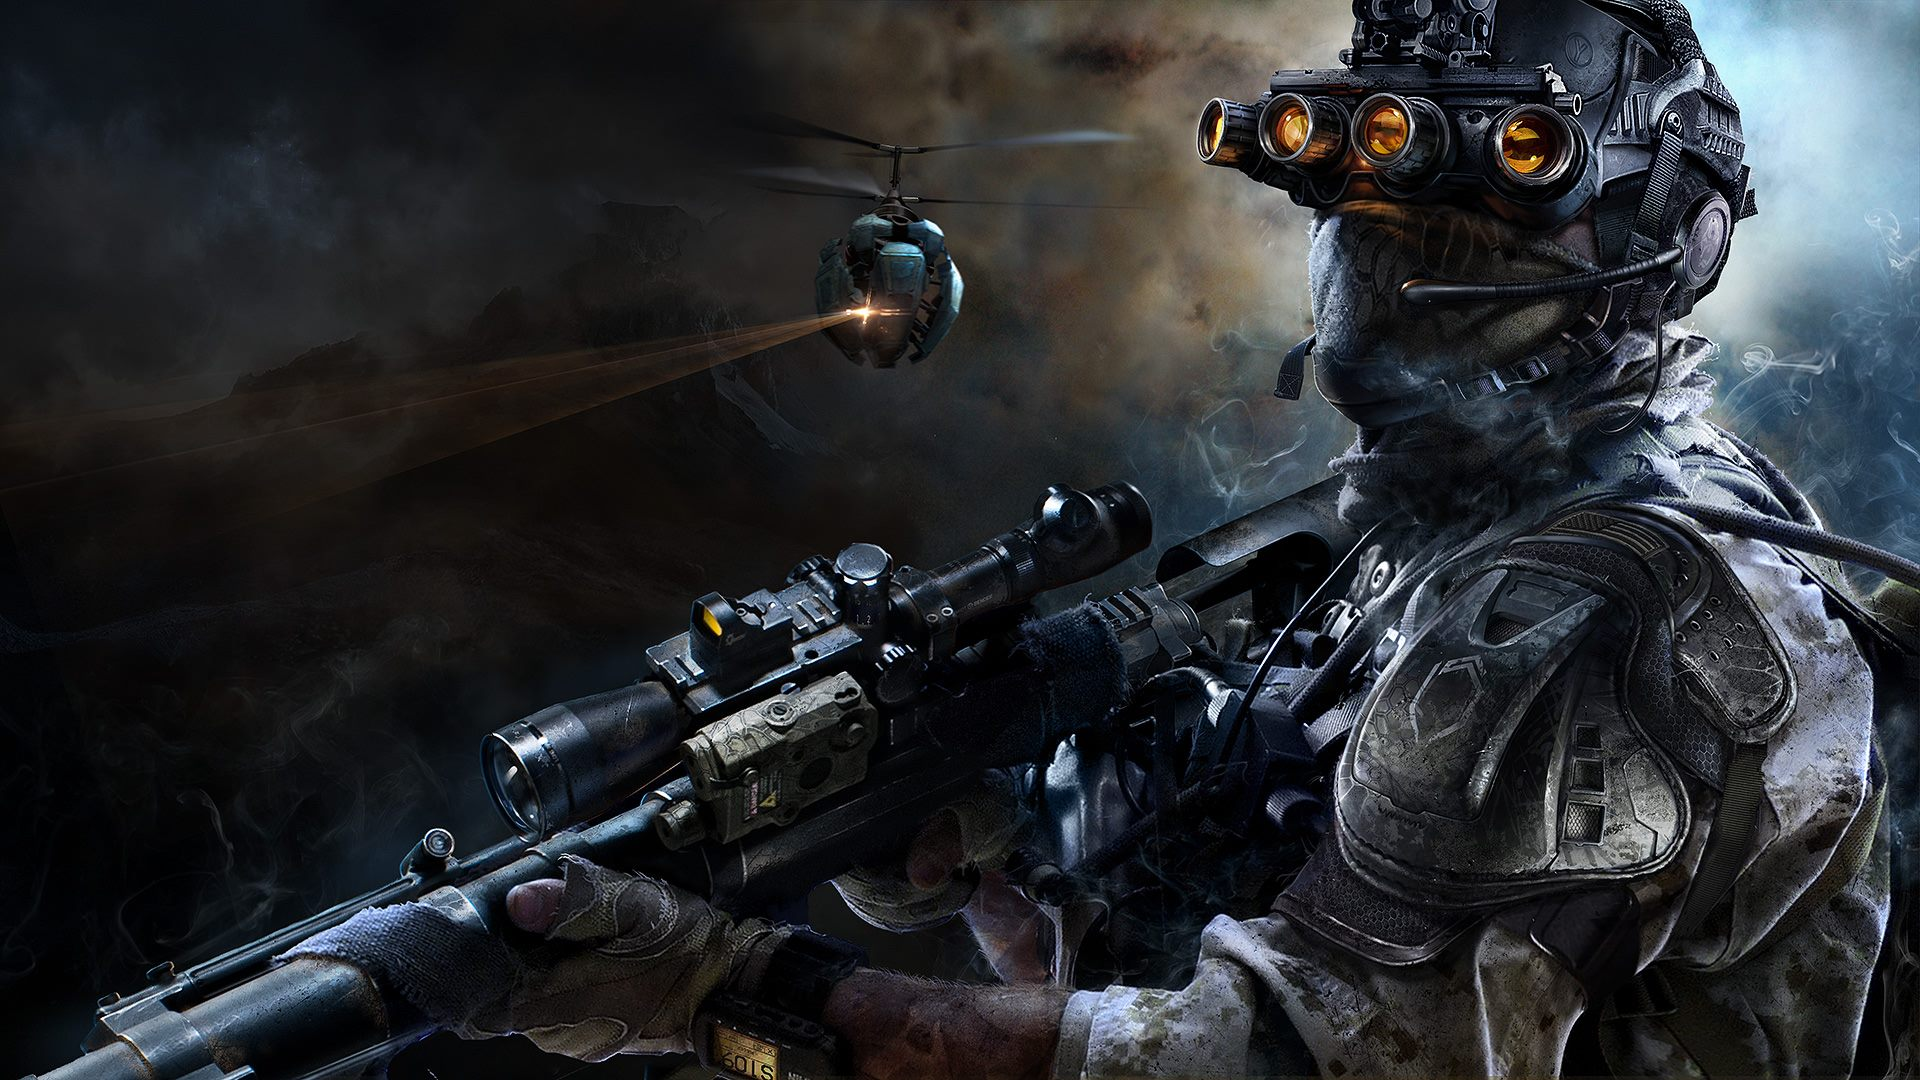 Sniper: Ghost Warrior 3 Delayed Again, Now Due April 2017